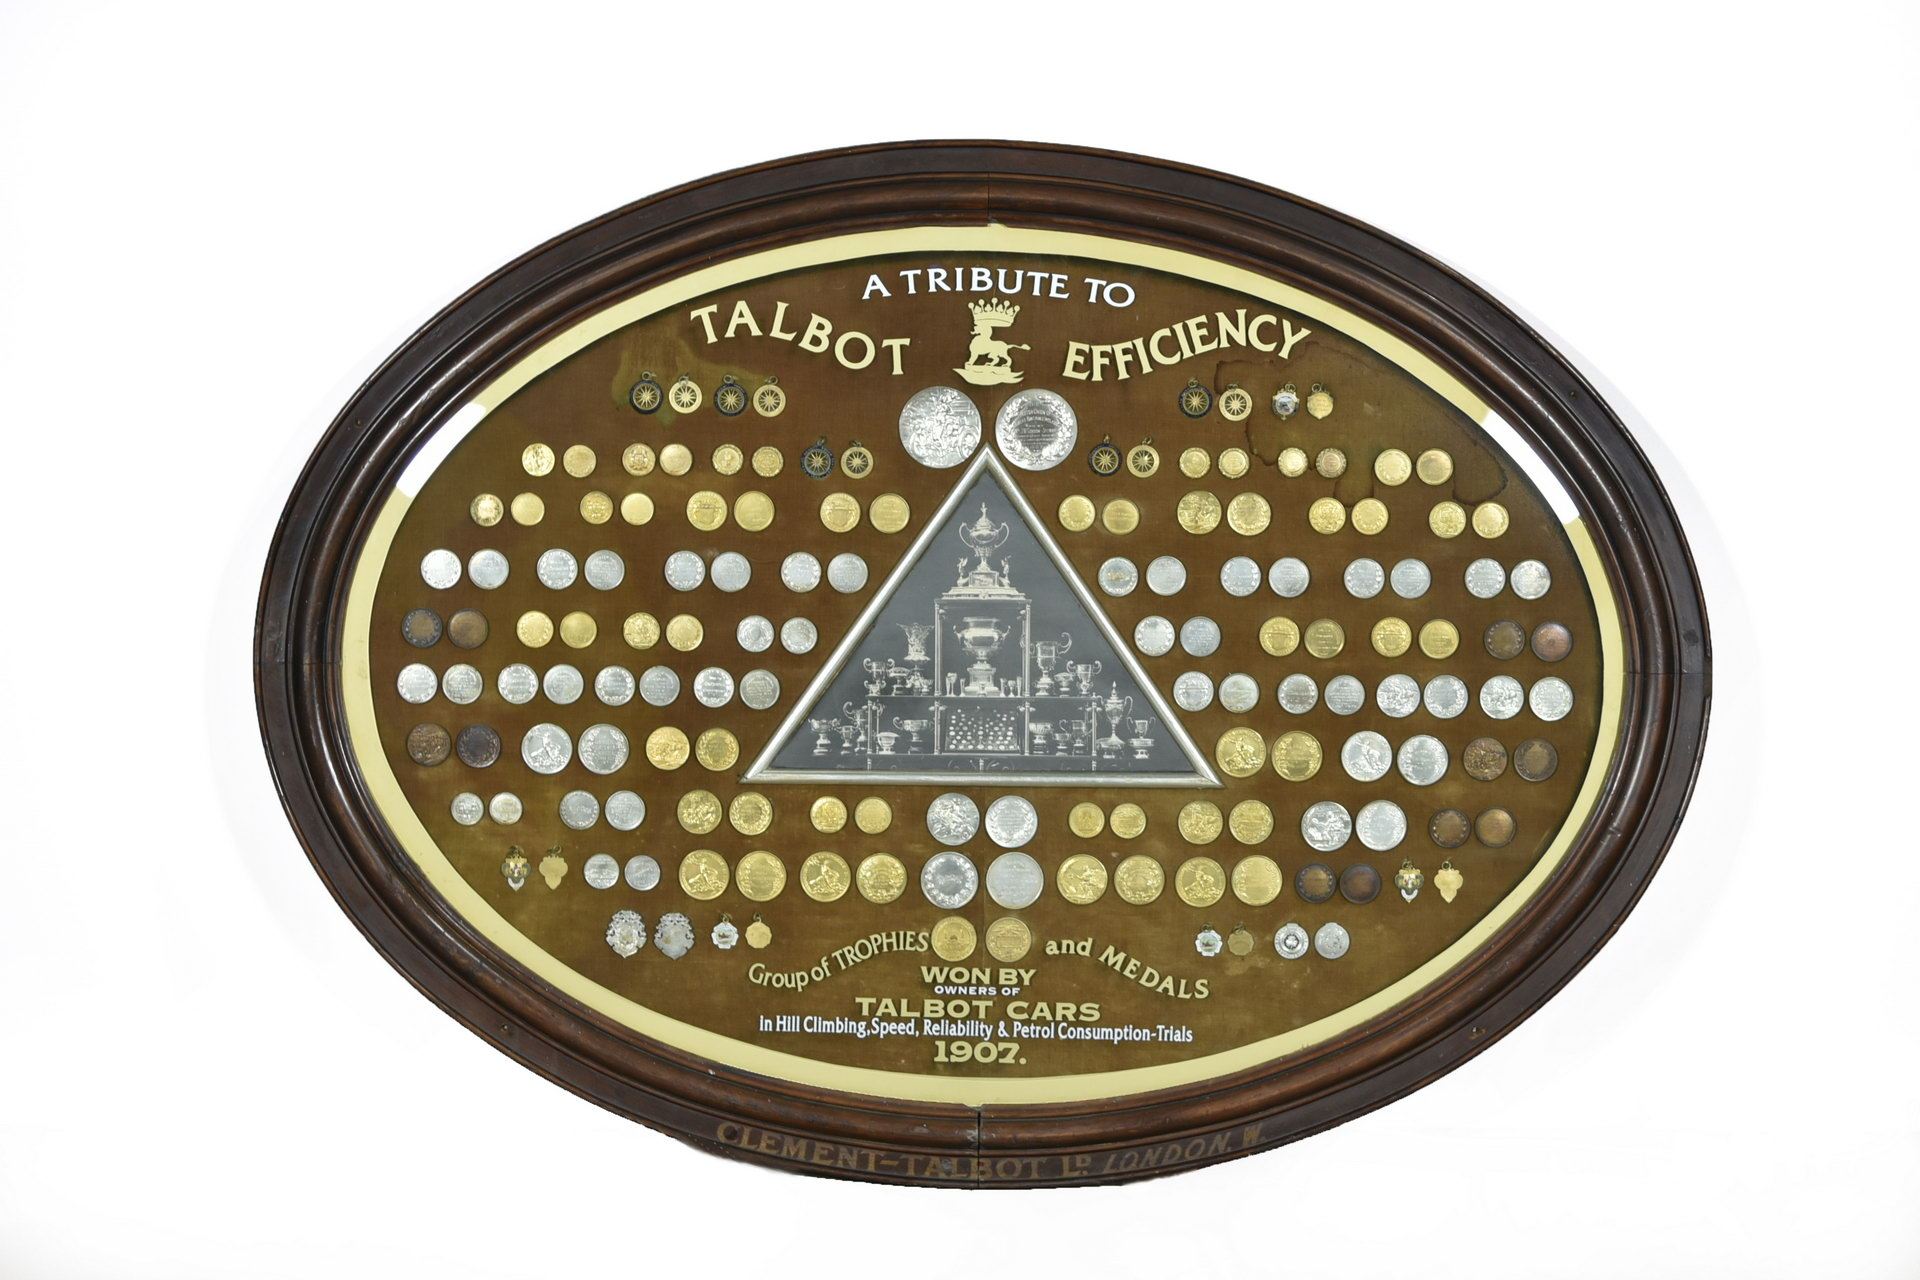 Amazing 1907 Trophies & Medals Won By Talbot Cars Plaque Sign from Talbot Boardroom